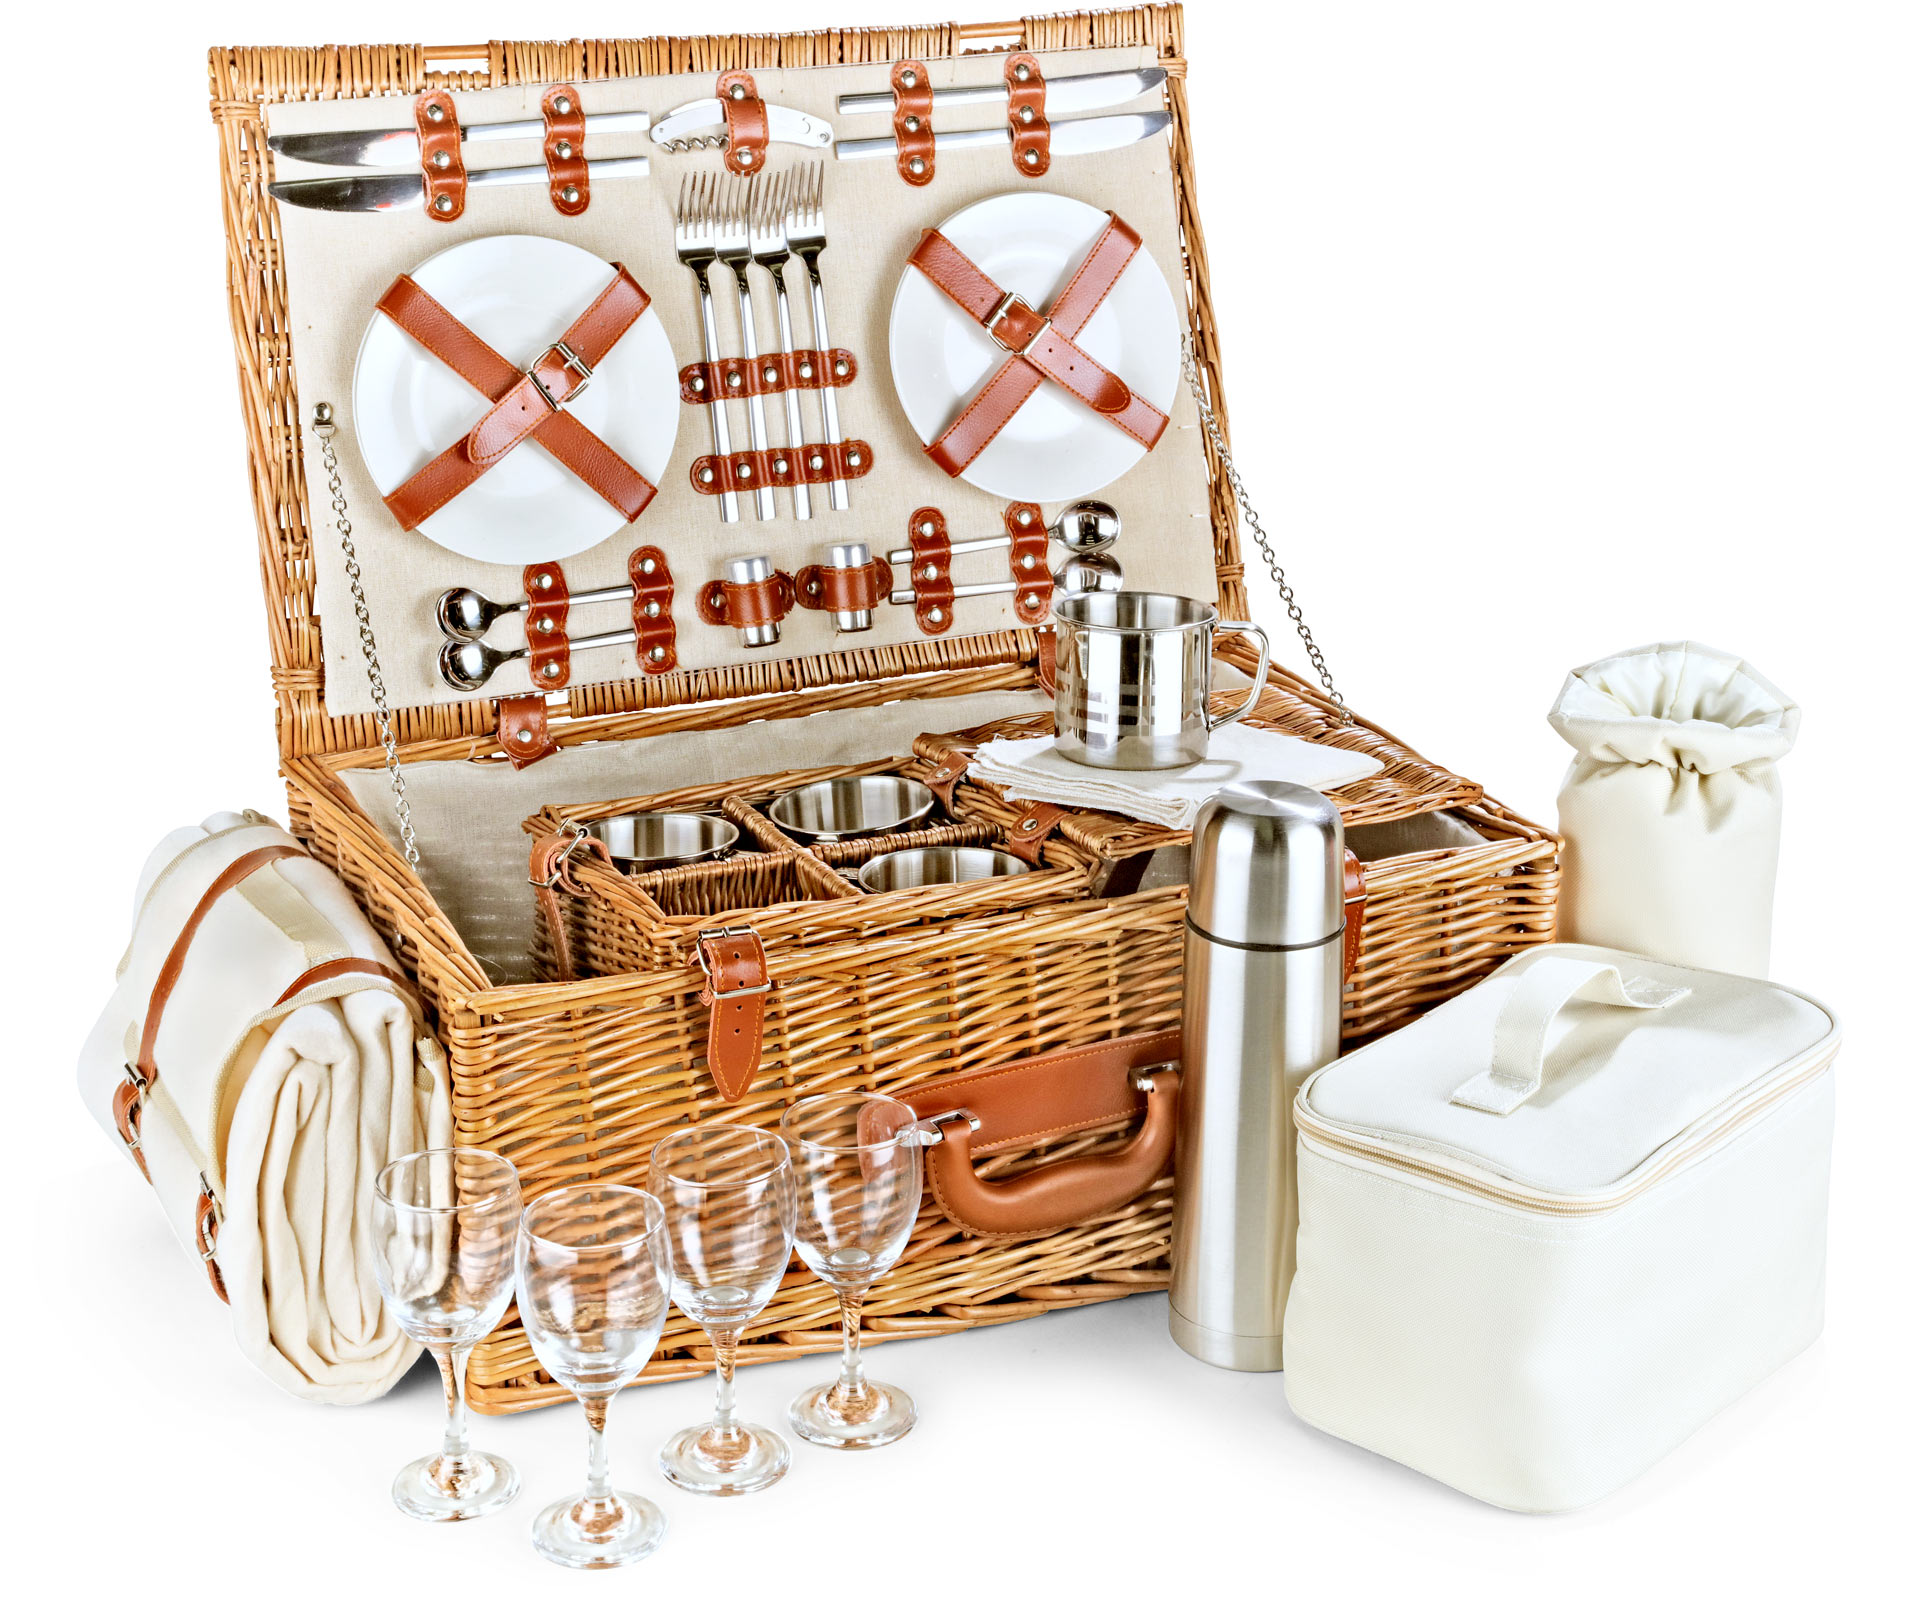 Optima Gordon 4 Person Tea Picnic Basket : Find every in the world selling basket person at